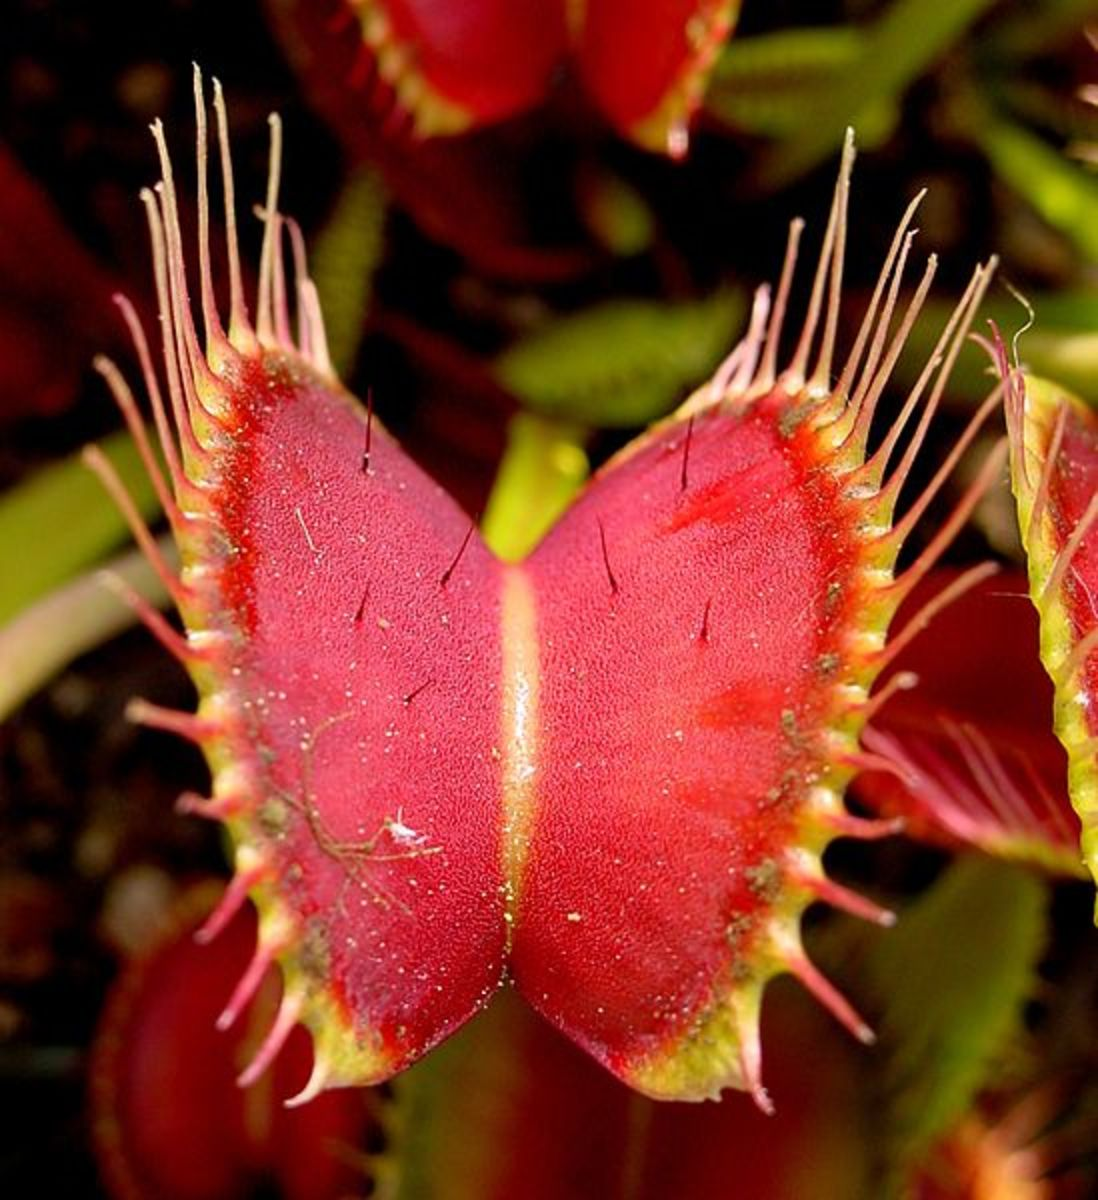 Wonderful Insect Eating Carnivorous Plants! Attractive Images of Ferocious Plants